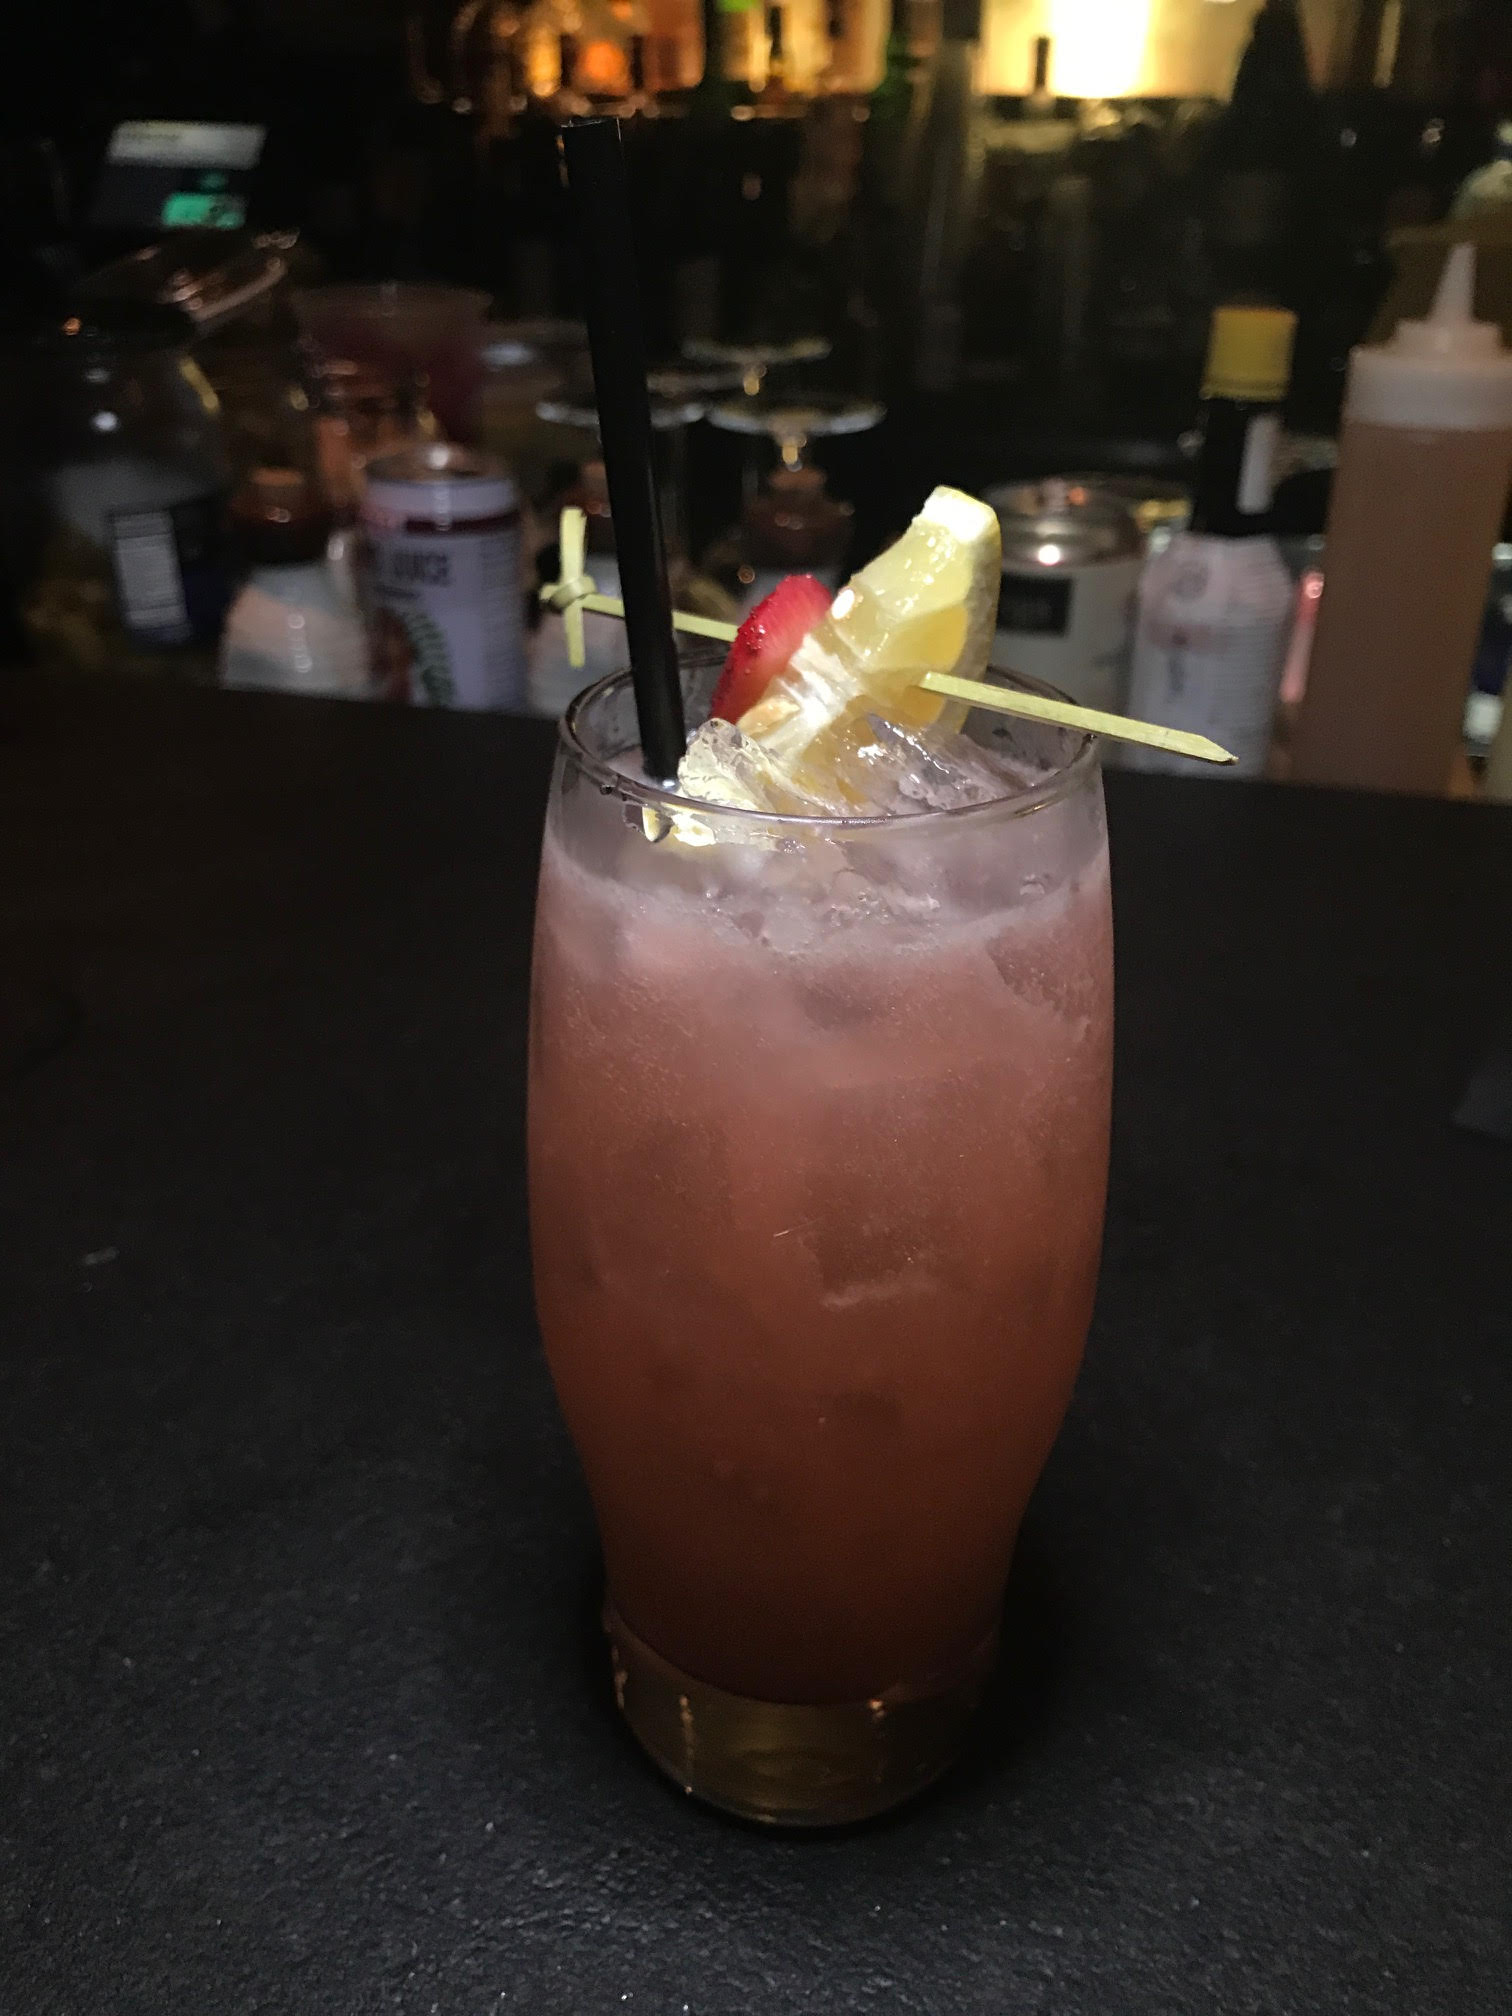 Gin cocktail with hints of strawberries and lemon